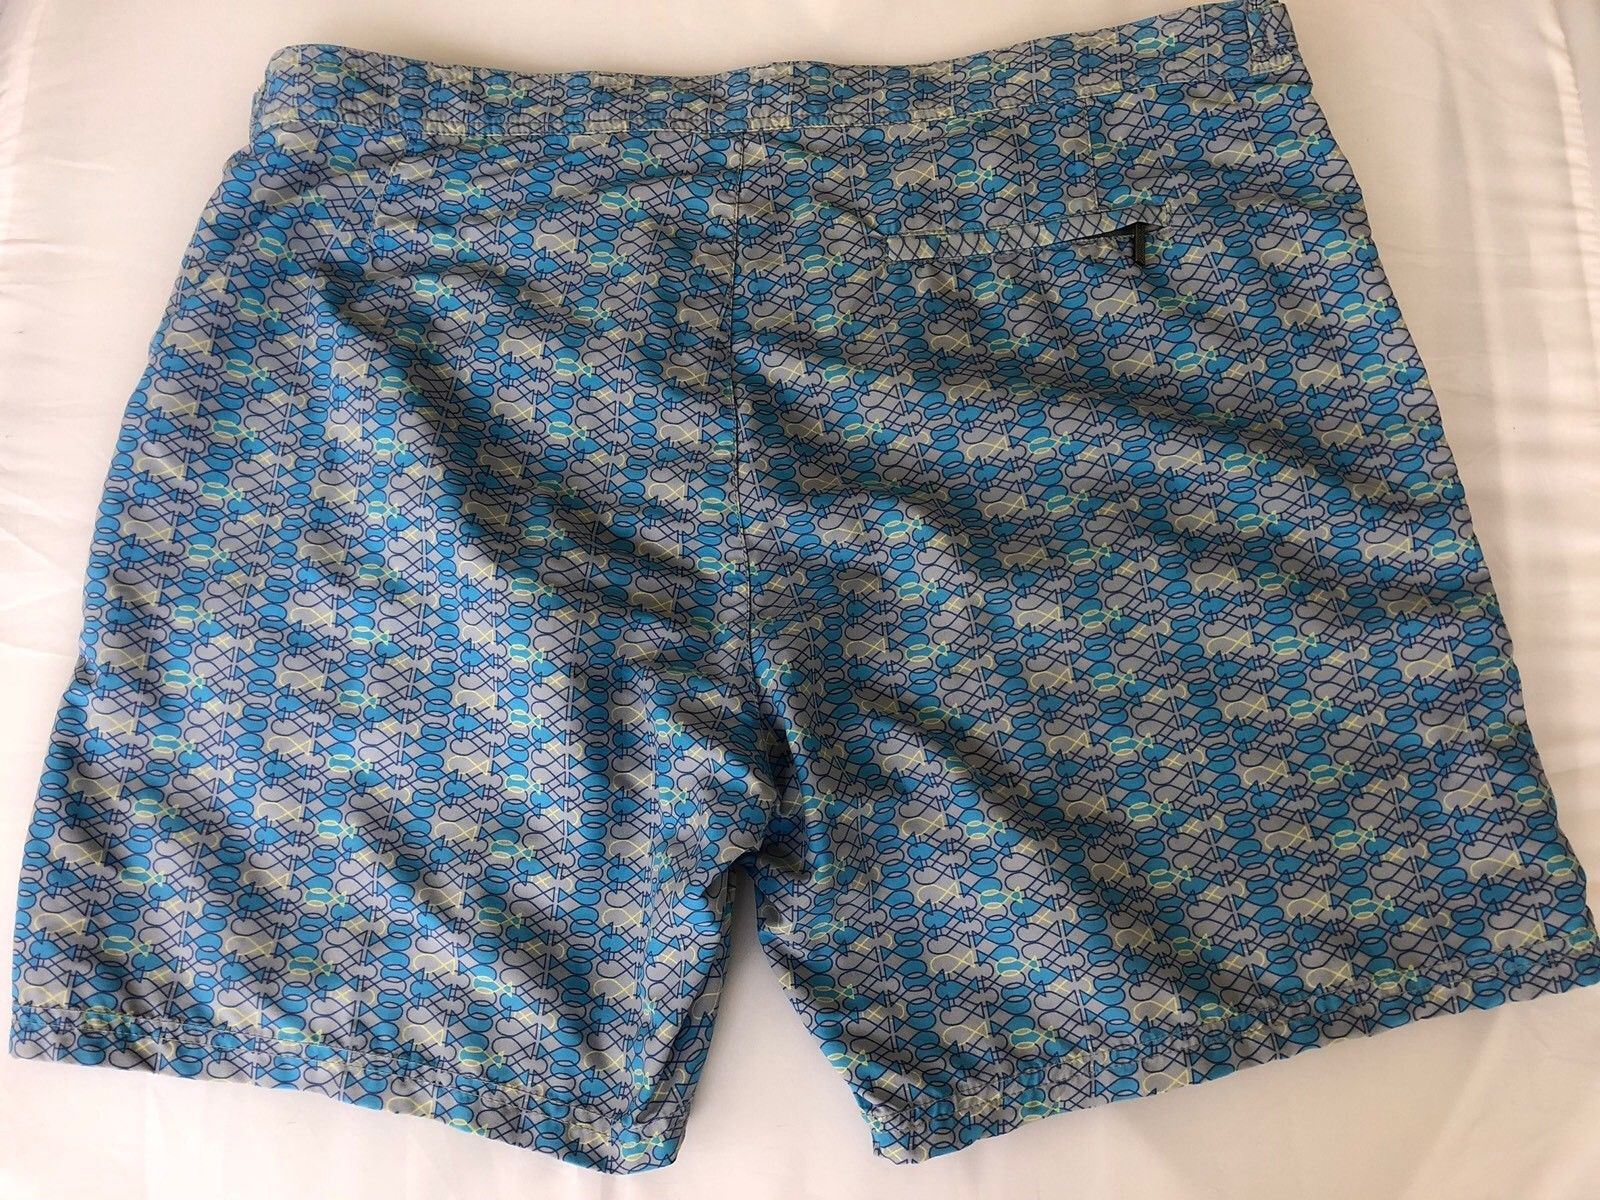 NWT $159 Boss Hugo Boss Tigerfish Mens Blue Swimsuit Shorts Size Large - BAYSUPERSTORE